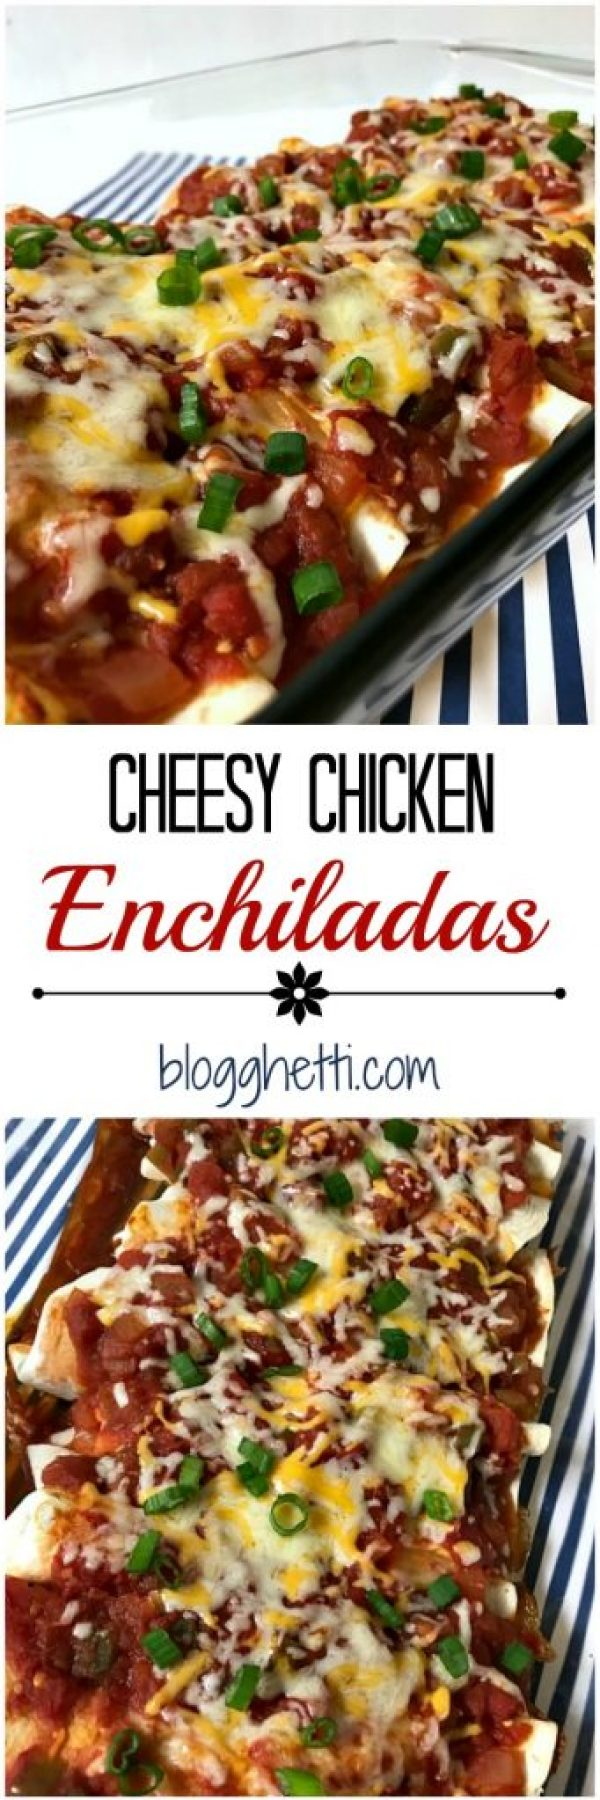 This Cheesy Chicken Enchilada dish is sure to become a family favorite with all of the cheesy, creamy, and slightly spicy goodness mixed with the shredded chicken; all wrapped up in a tortilla shell.